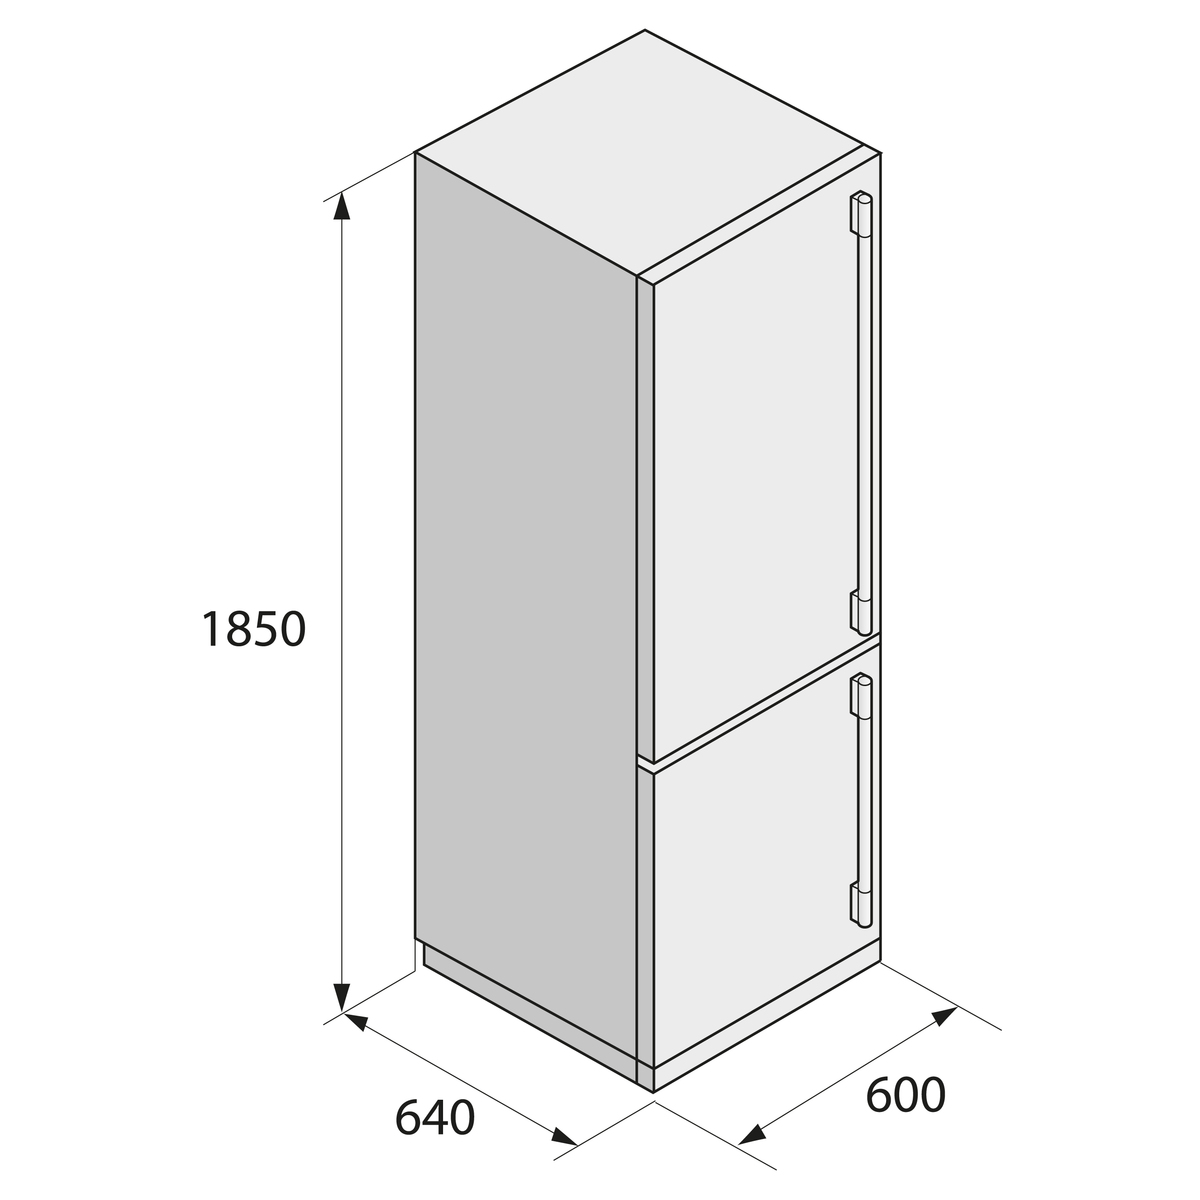 asko o850 oven operating instructions